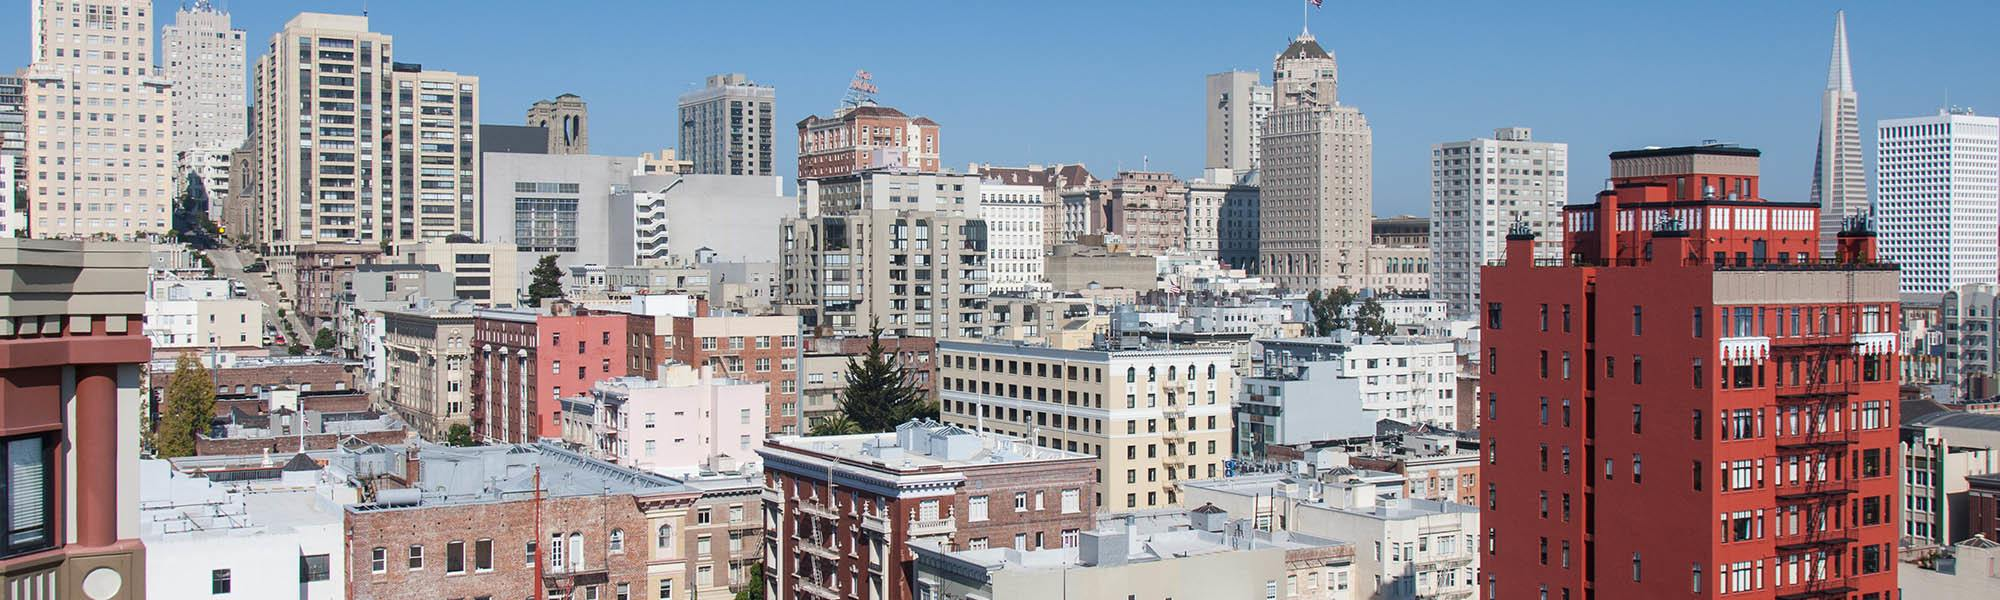 Learn about our neighborhood at Tower 737 Condominium Rentals in San Francisco, CA on our website